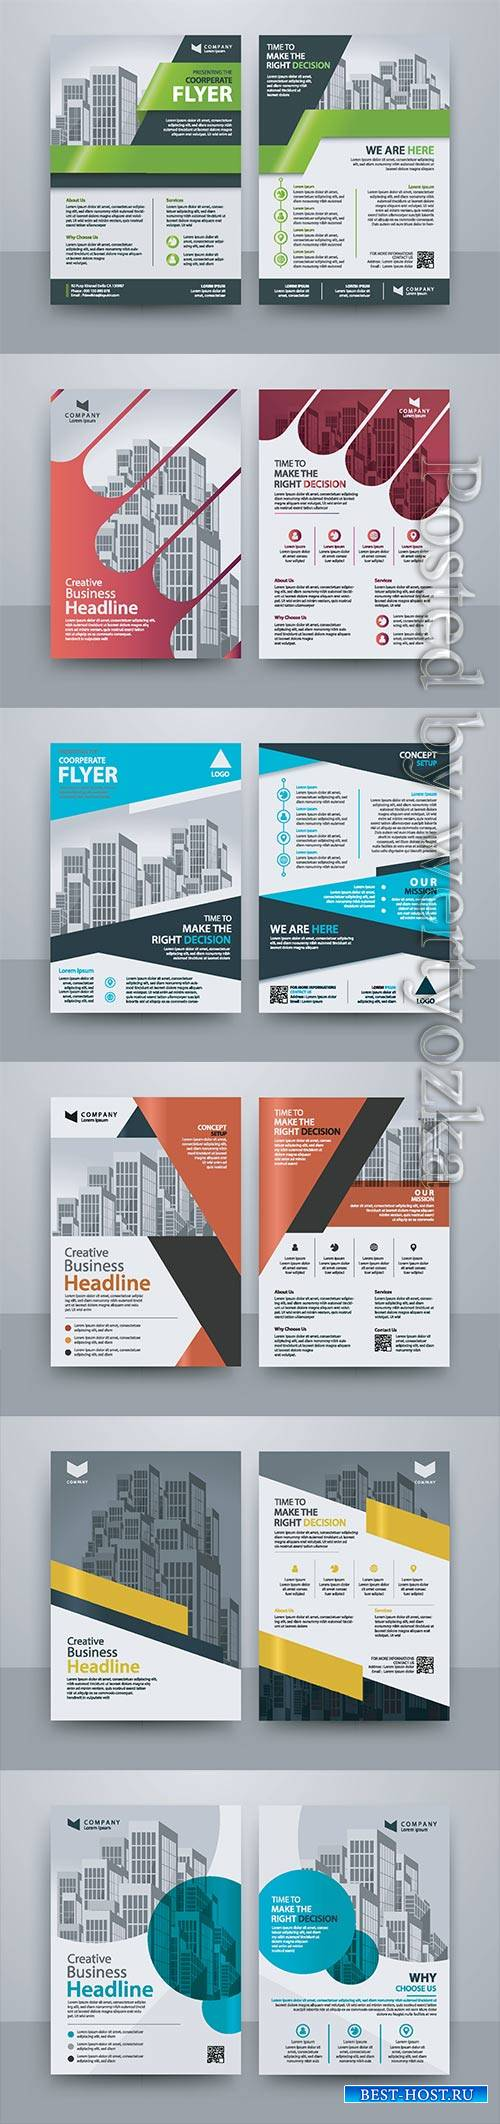 Business vector template for brochure, annual report, magazine # 20